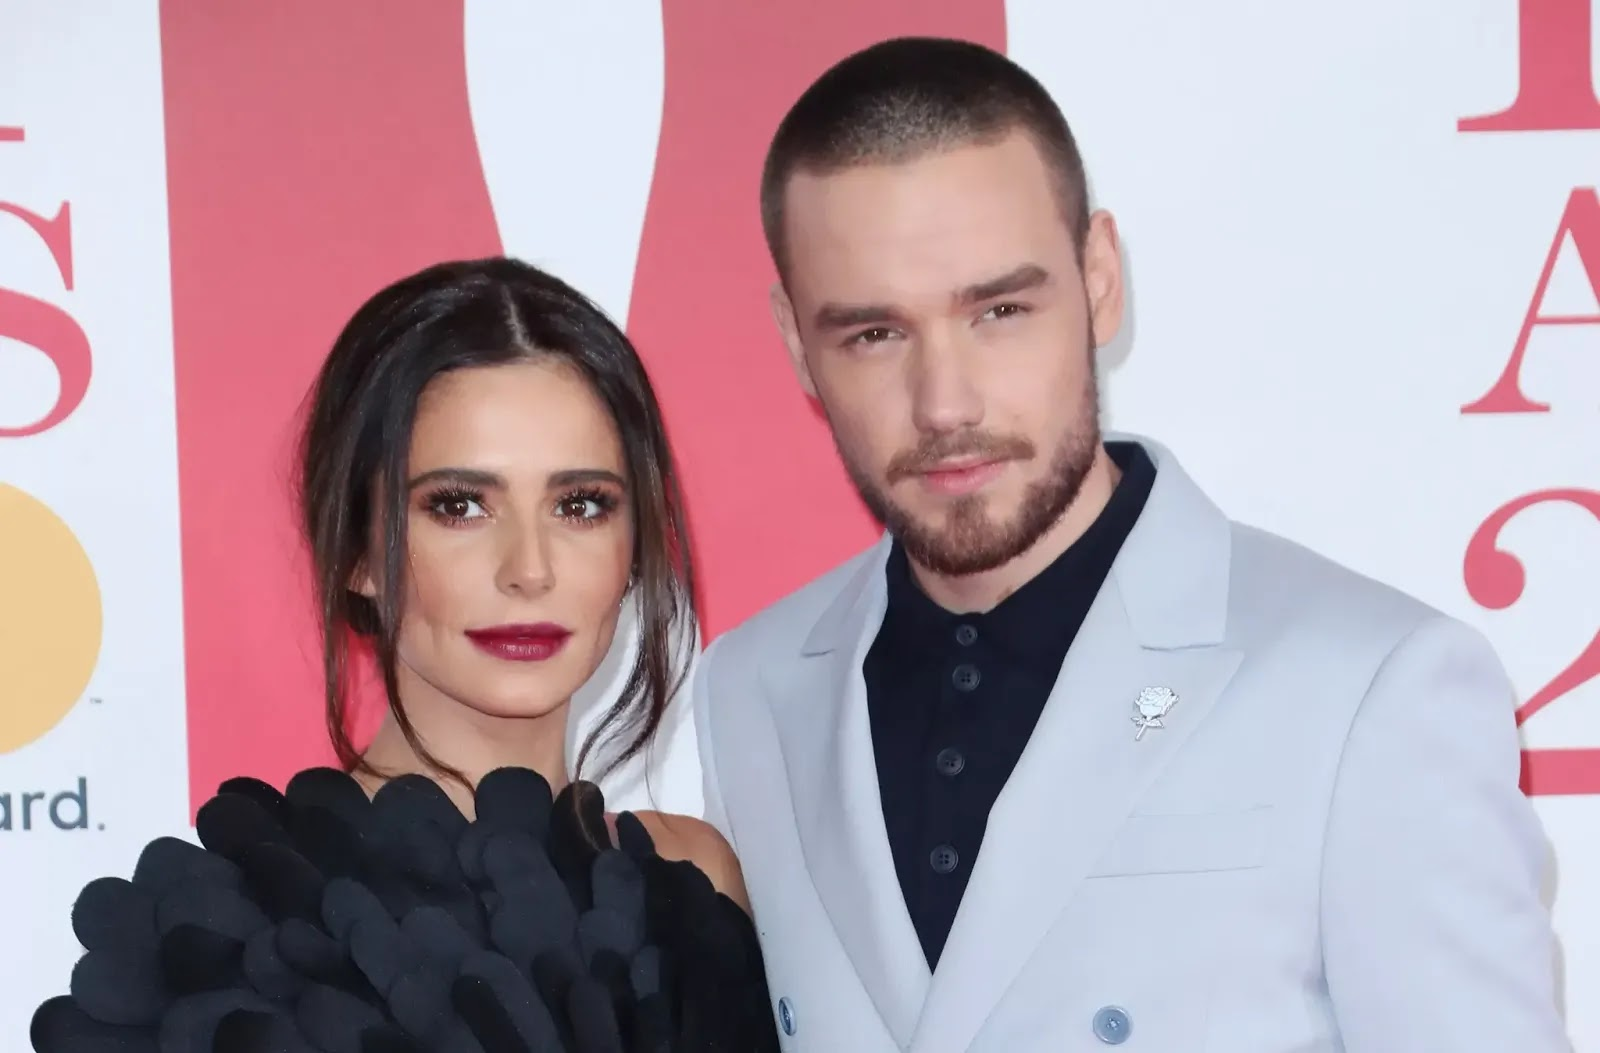 Liam Payne And Cheryl Just Announced Their Split In A Heartbreaking Statement